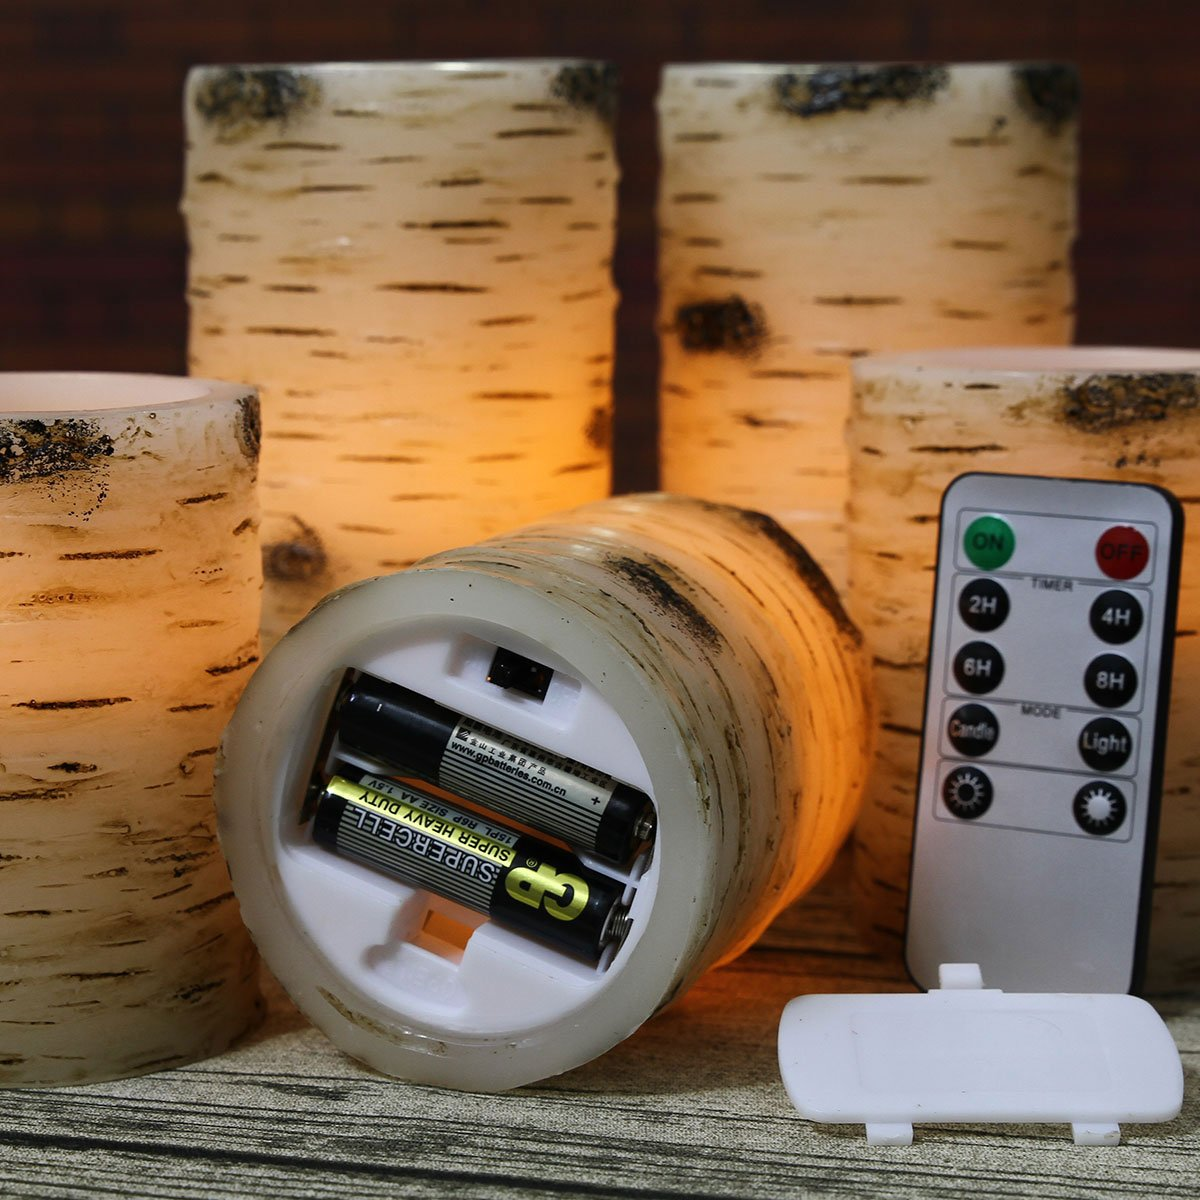 Pandaing Set of 5 Pillar Birch Bark Effect Flameless LED Candles with 10-key Remote Control and 2 4 6 or 8 Hours Timer Function by Pandaing (Image #5)